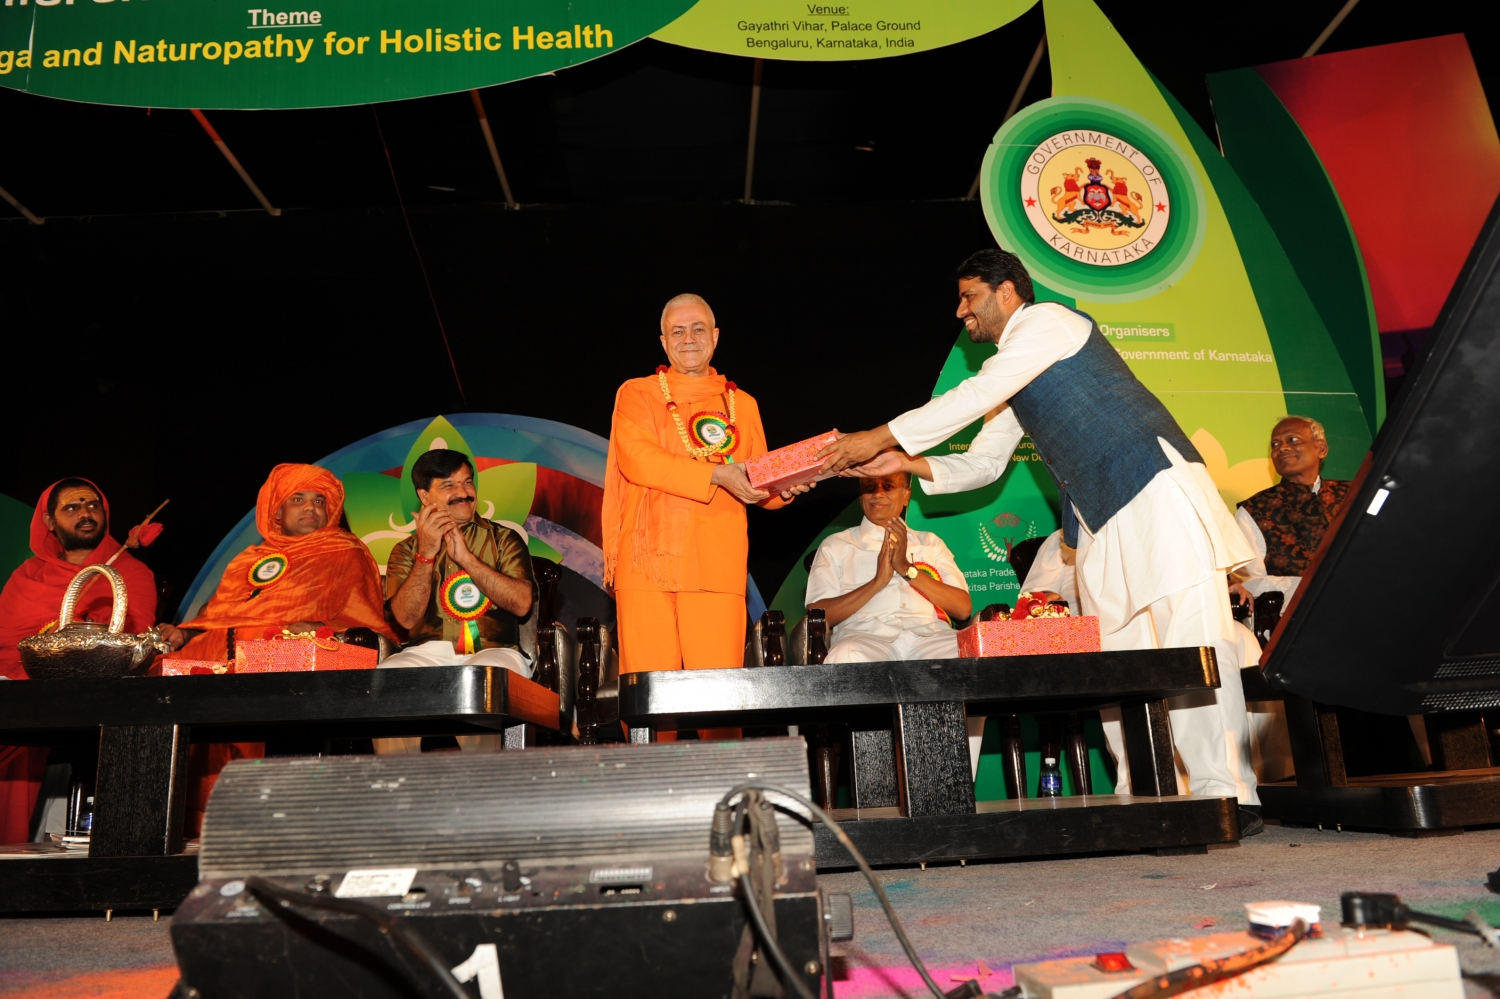 International Conference on Yoga and Naturopathy - Bengaluru, India - 2012, February